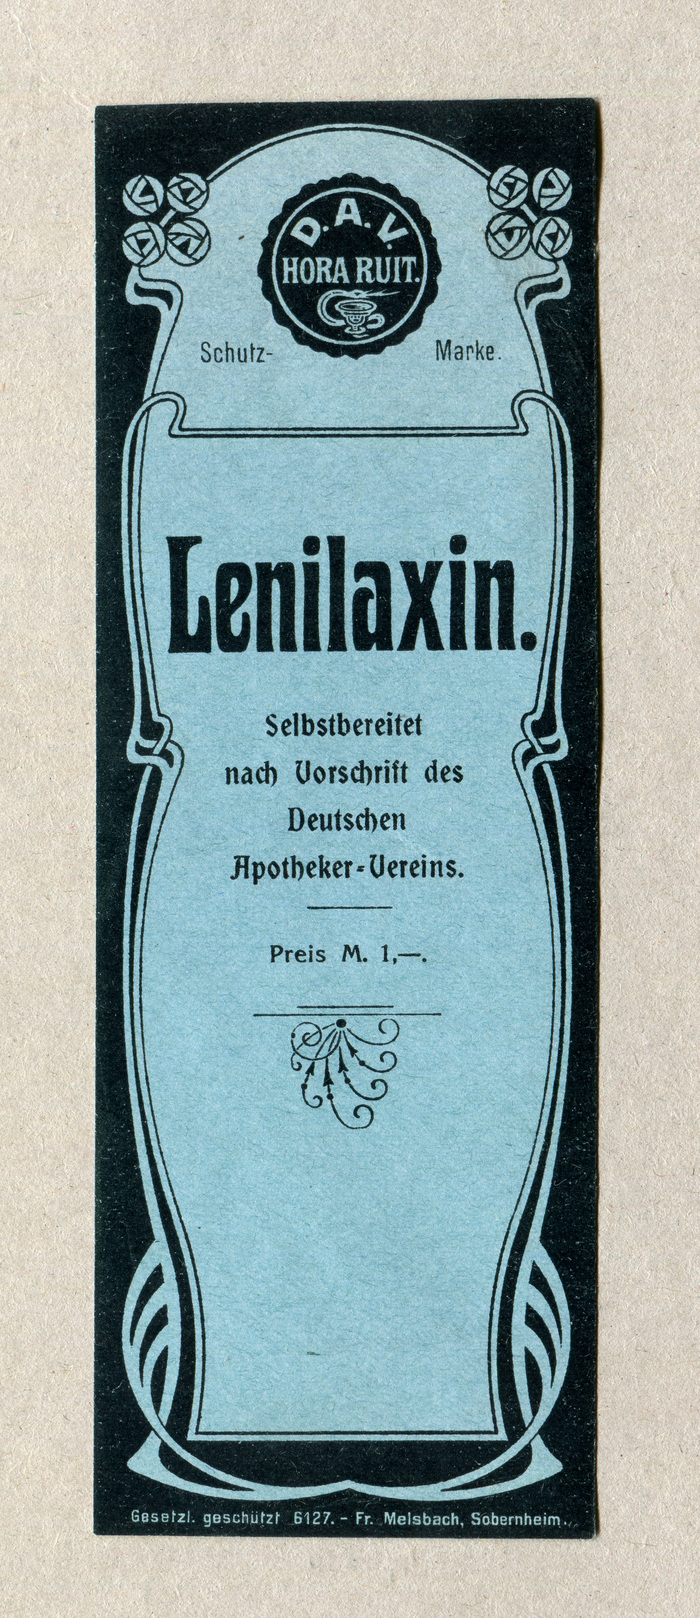 Lenilaxin uses a typeface that was sold by many foundries under various names, incl.  (Theinhardt), Phönix (Poppelbaum), and Medea (Flinsch; later continued by Bauer). The smaller text is in one of the light cuts added by German foundries to their  adaptations, see . The price is in  (1904).